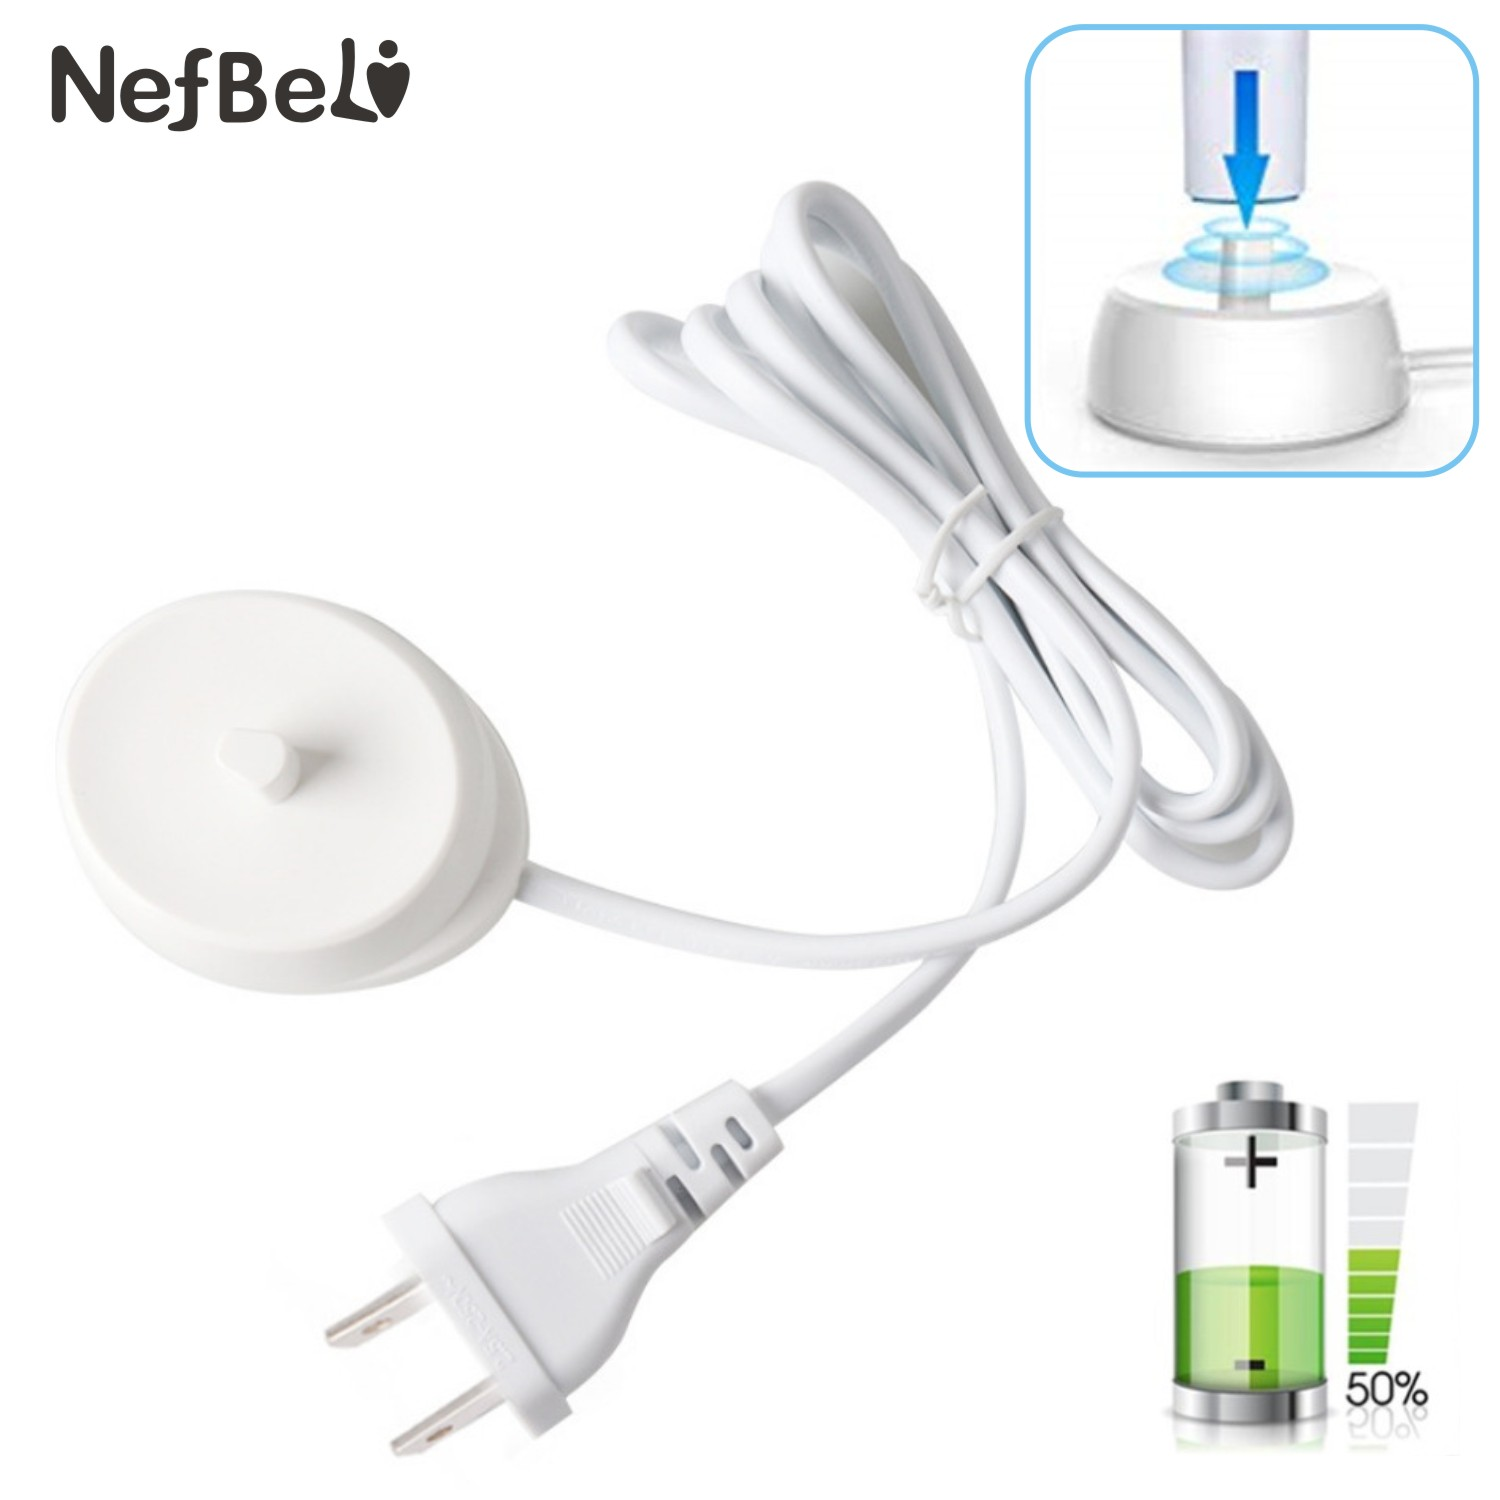 Replacement Electric Toothbrush Charger Model 3757 110-240V Suitable Oral B D12 D16 D20 D29 D34 1000 3000 4000 Charging Cradle